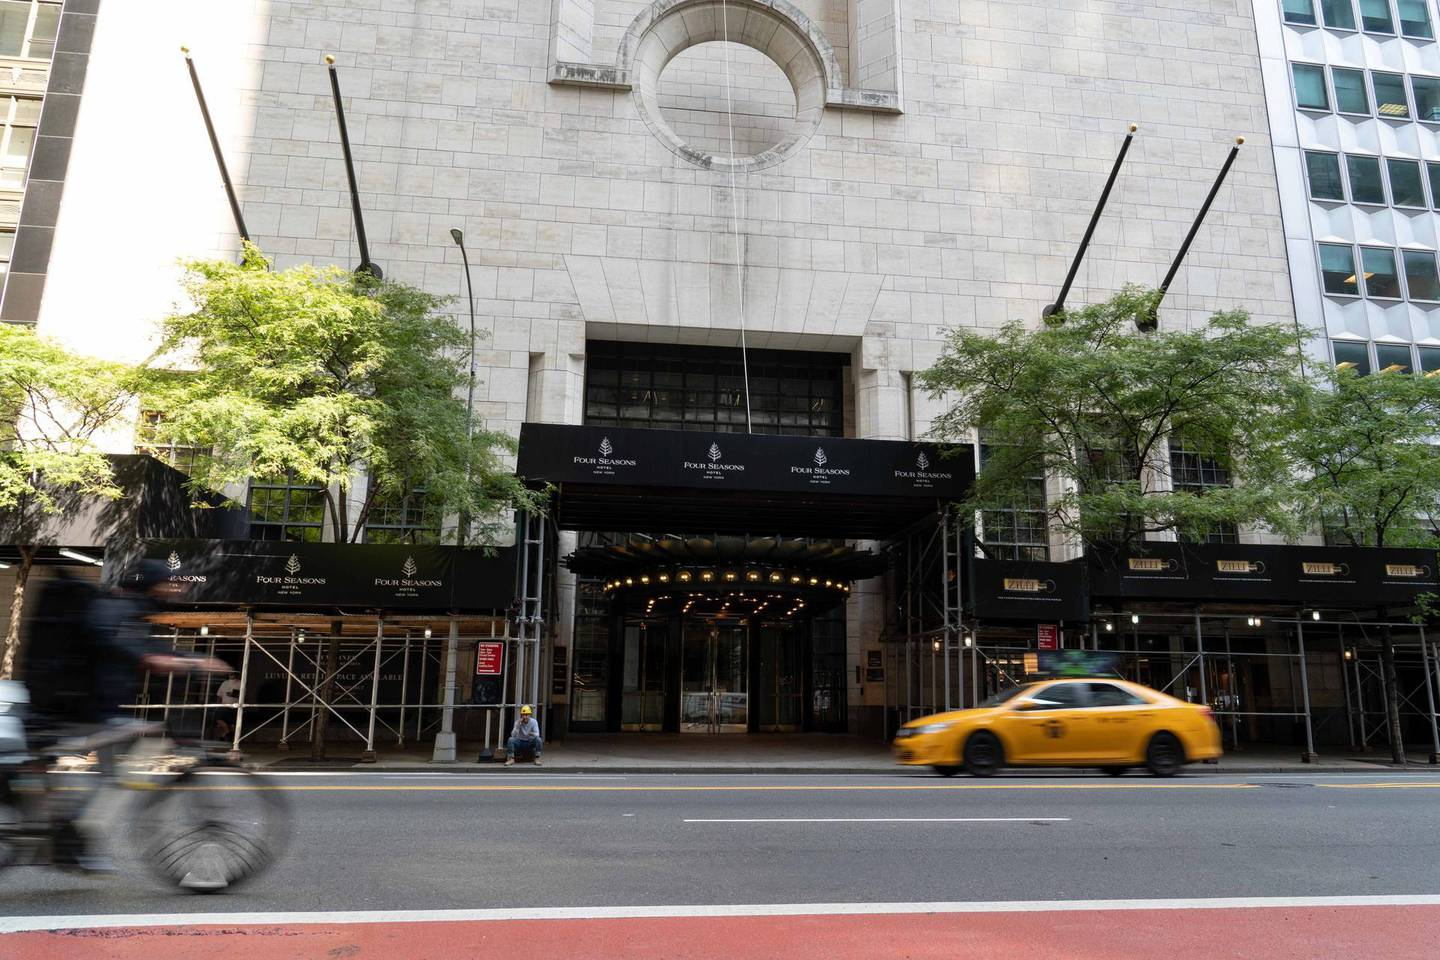 More than 200 hotels across New York City, including the Four Seasons New York, remain closed. Credit: Sophie Tremblay